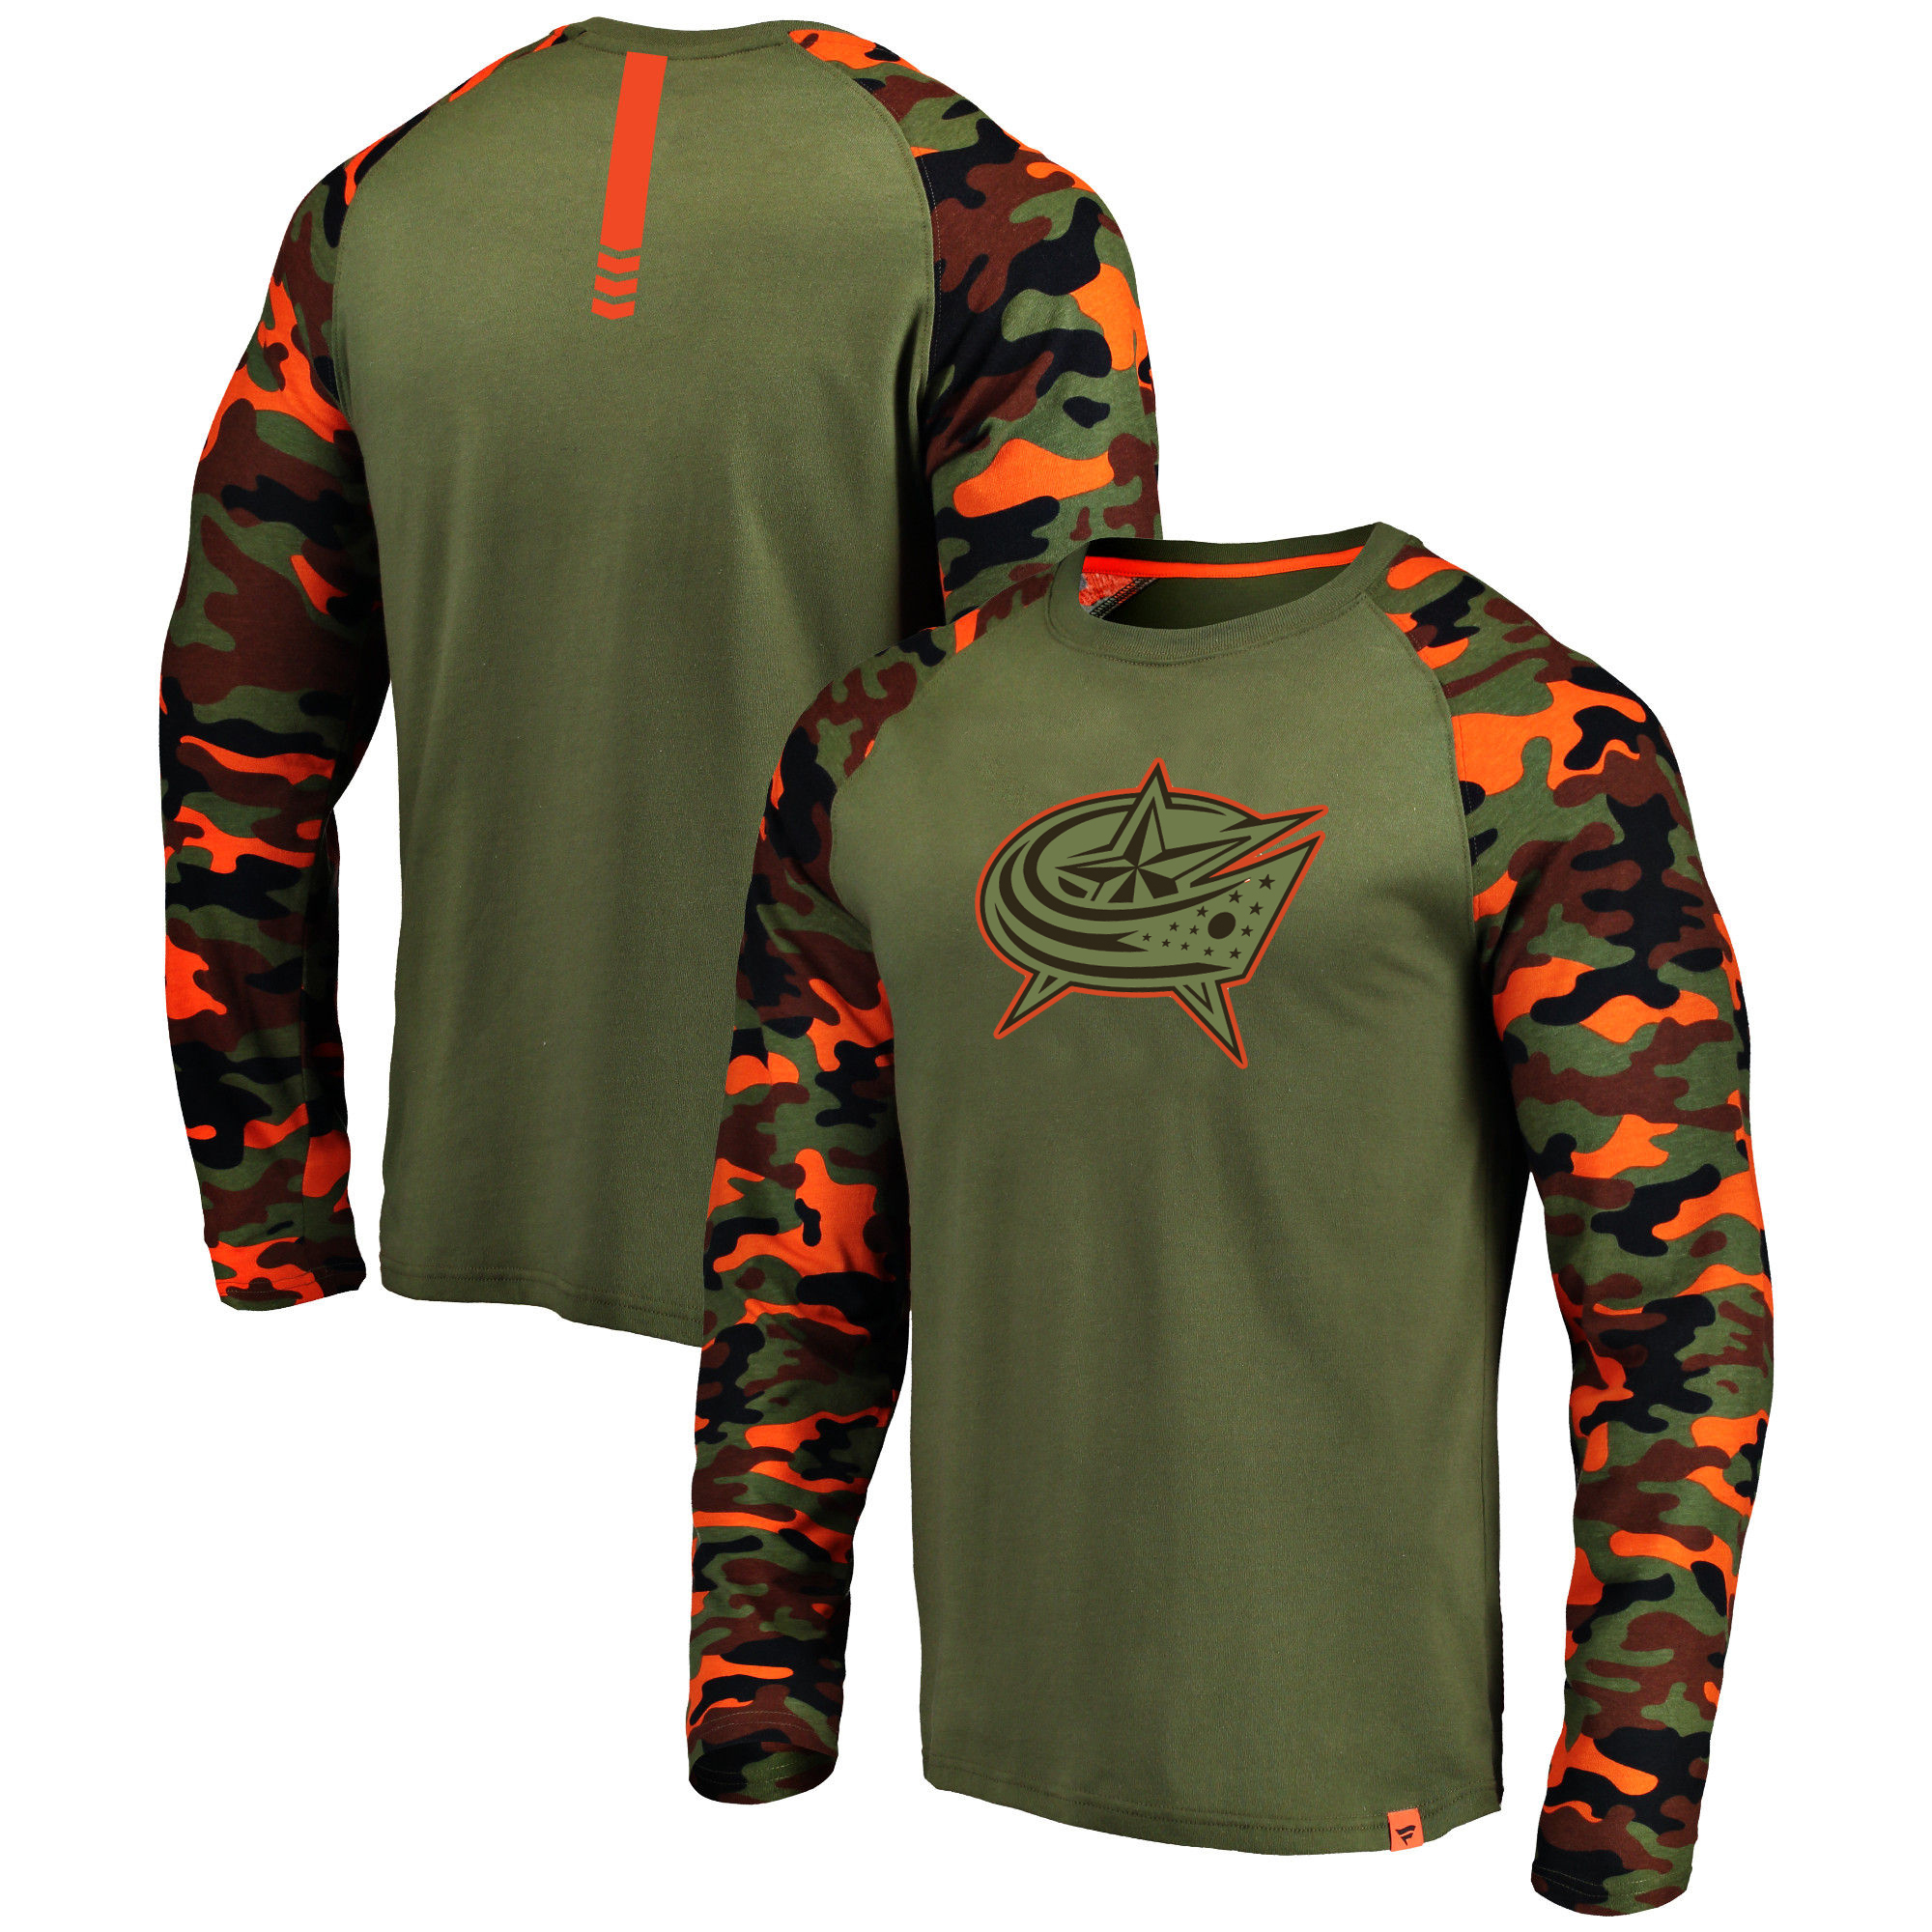 Columbus Blue Jackets Fanatics Branded Olive/Camo Recon Long Sleeve Raglan T-Shirt